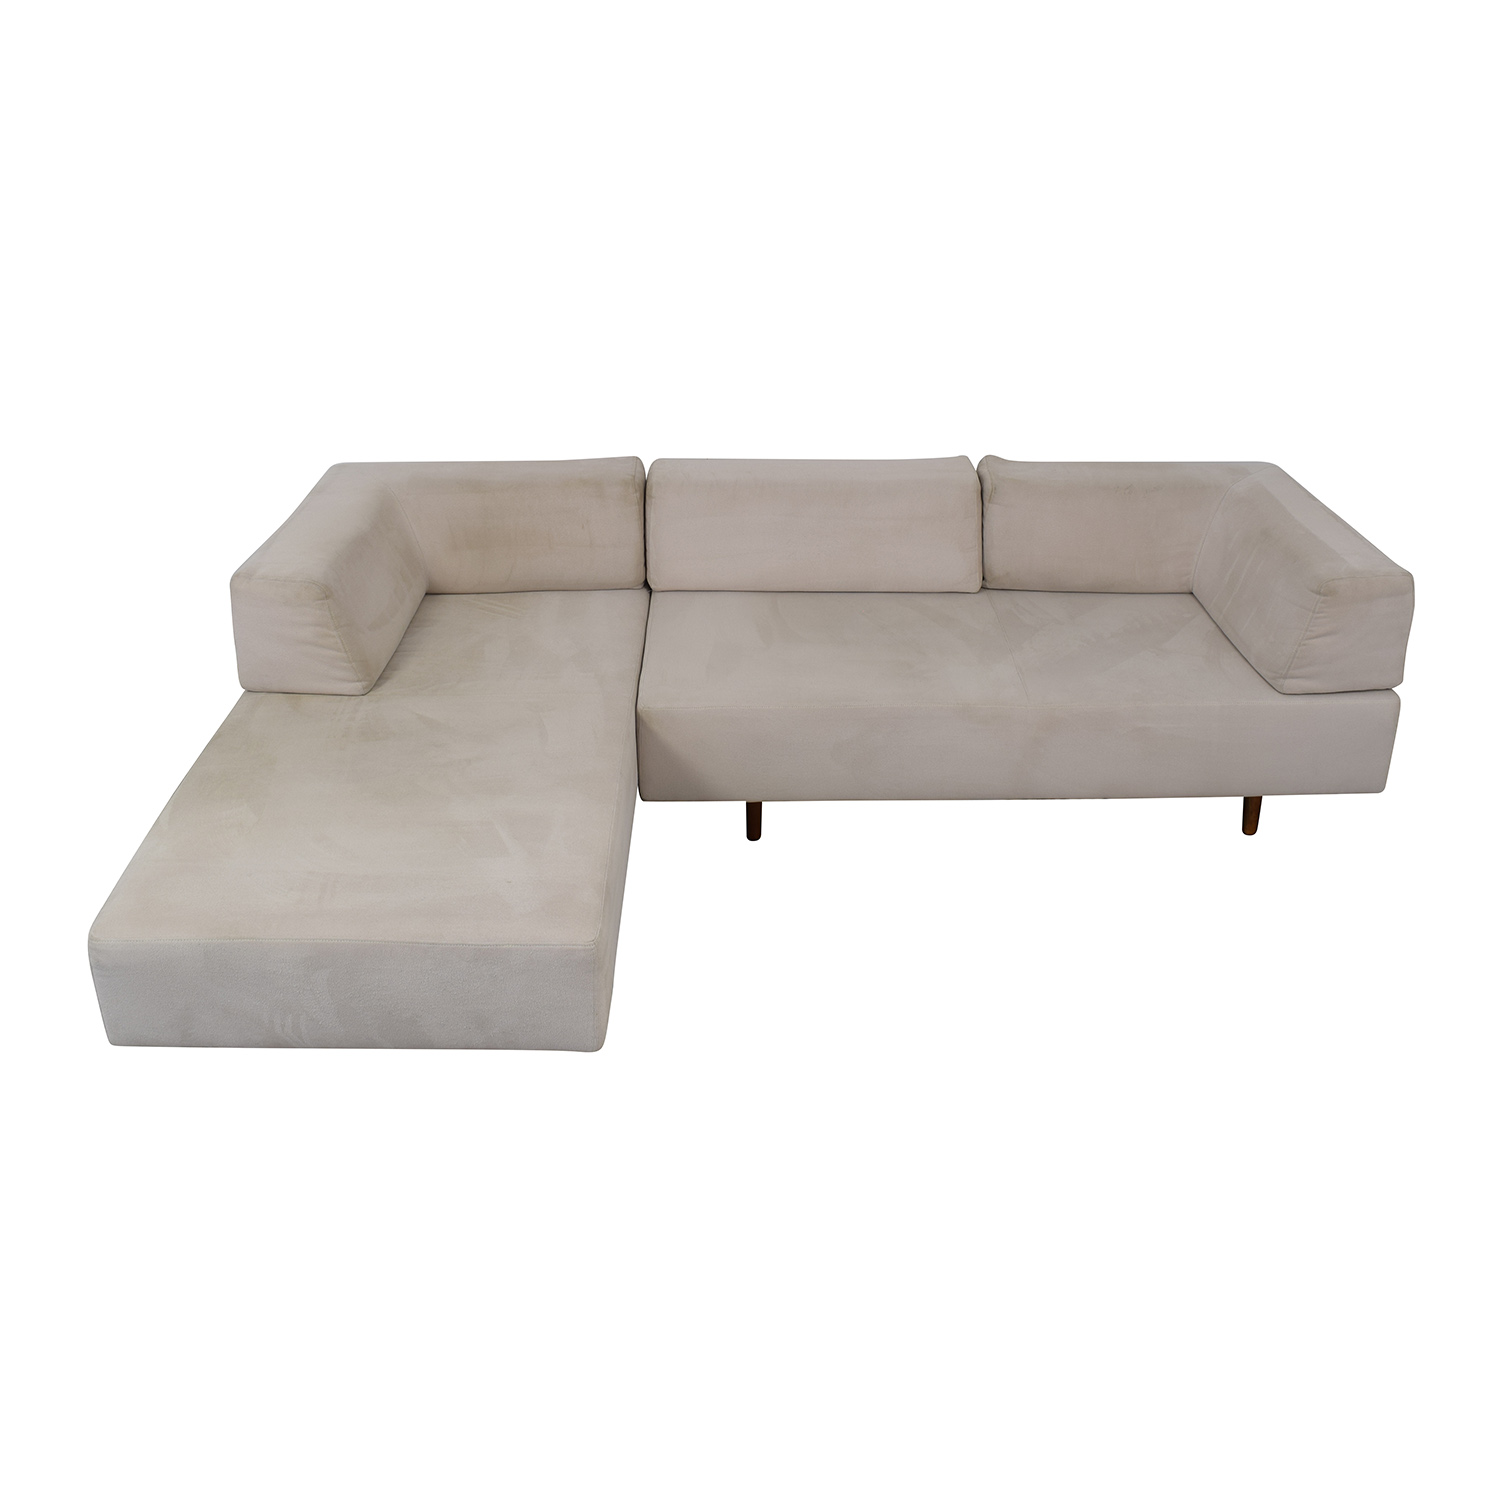 West Elm West Elm Tillary Sectional Sofa and Chaise Lounge second hand